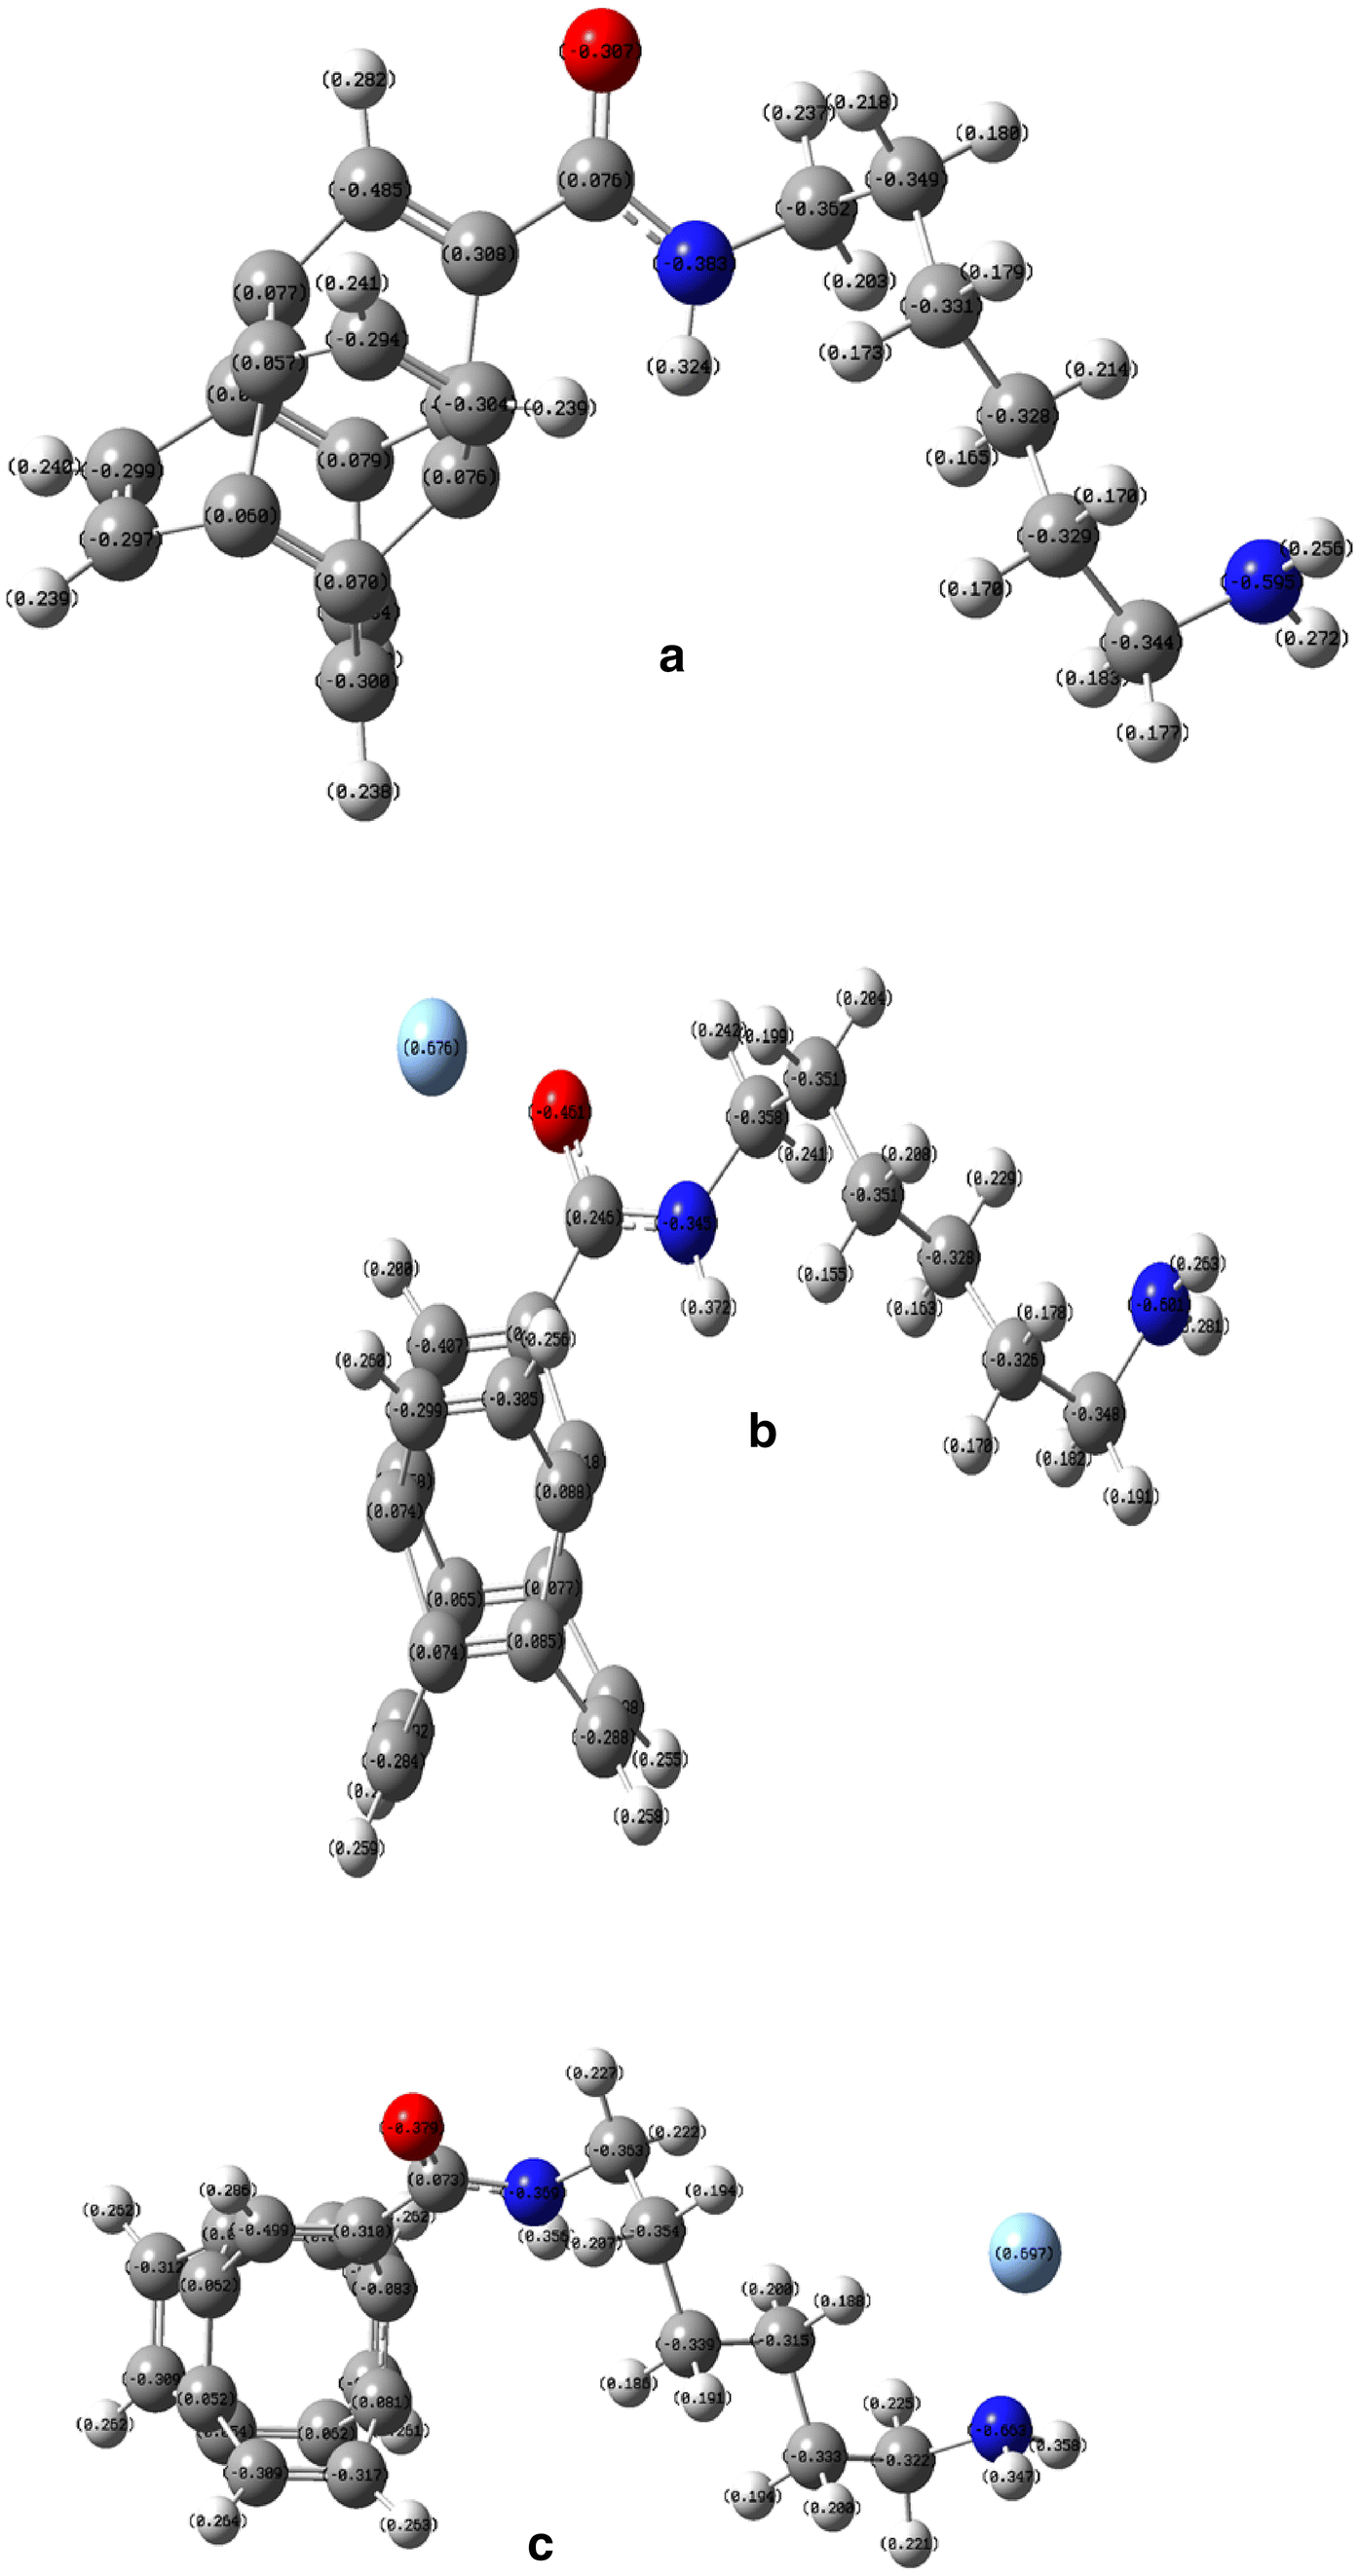 A DFT study on N-6-amino-hexylamide functionalized single